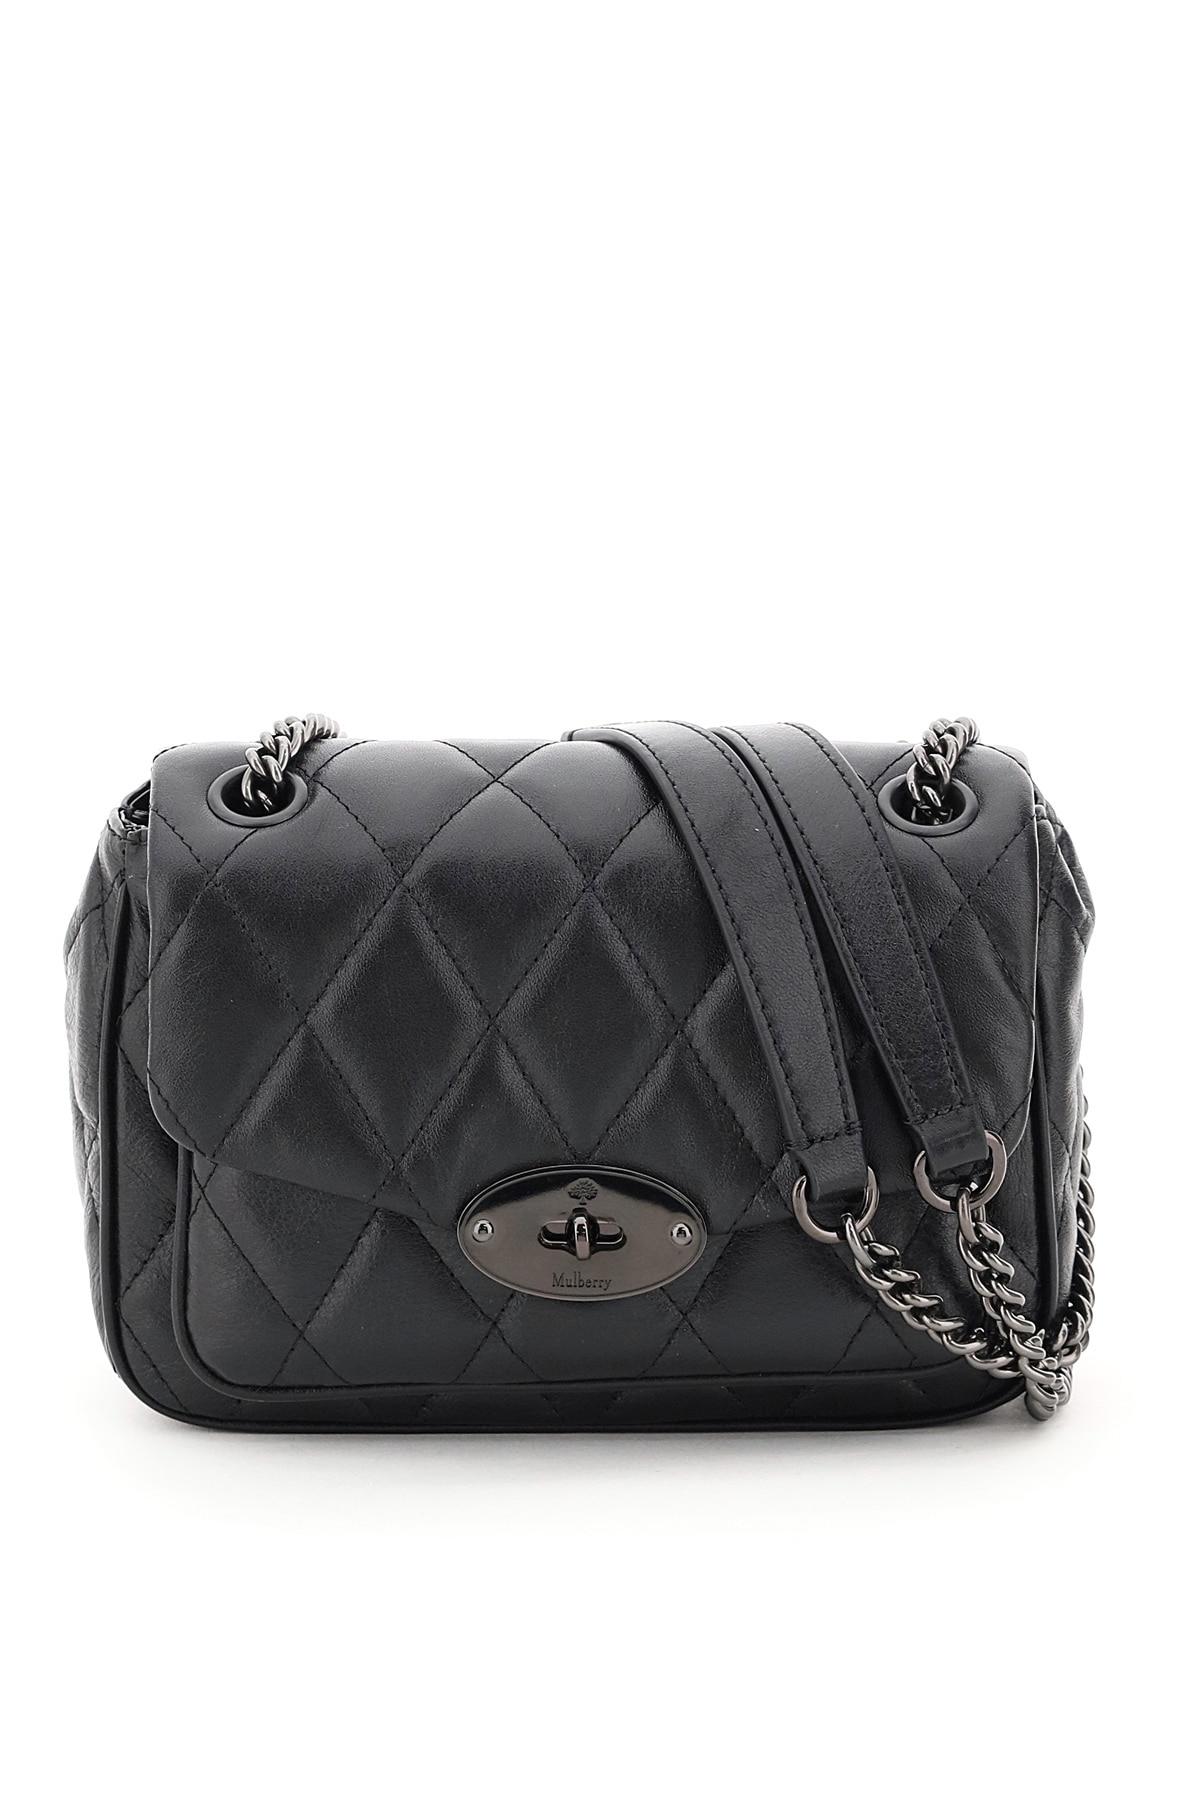 MULBERRY DARLEY MINI QUILTED BAG OS Black Leather